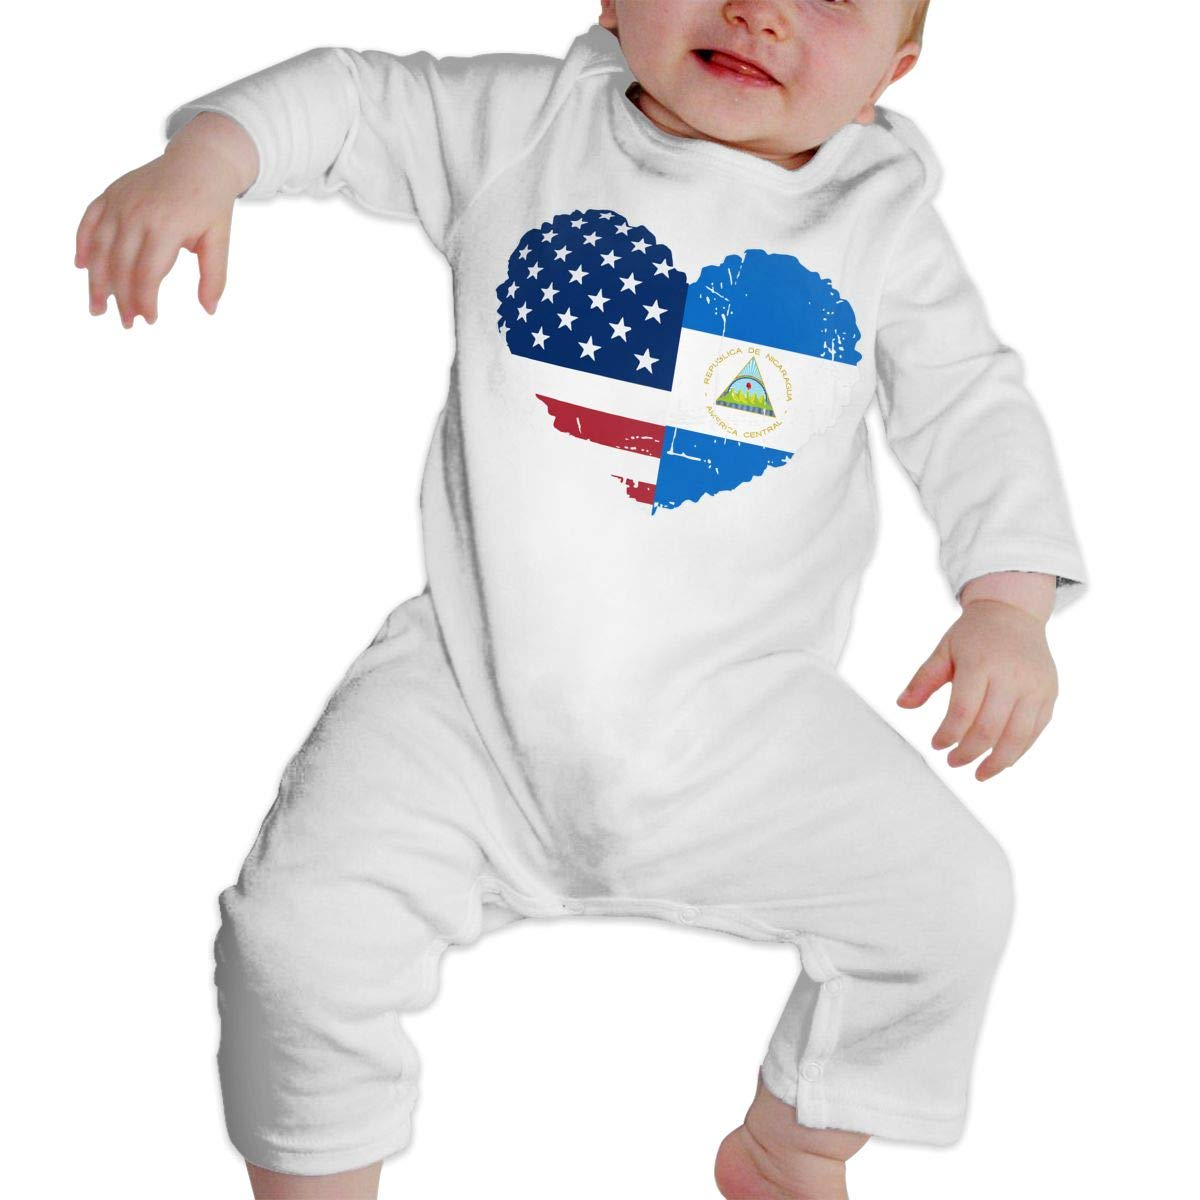 Mri-le1 Toddler Baby Boy Girl Long Sleeve Jumpsuit Nicaragua USA Flag Heart Baby Clothes